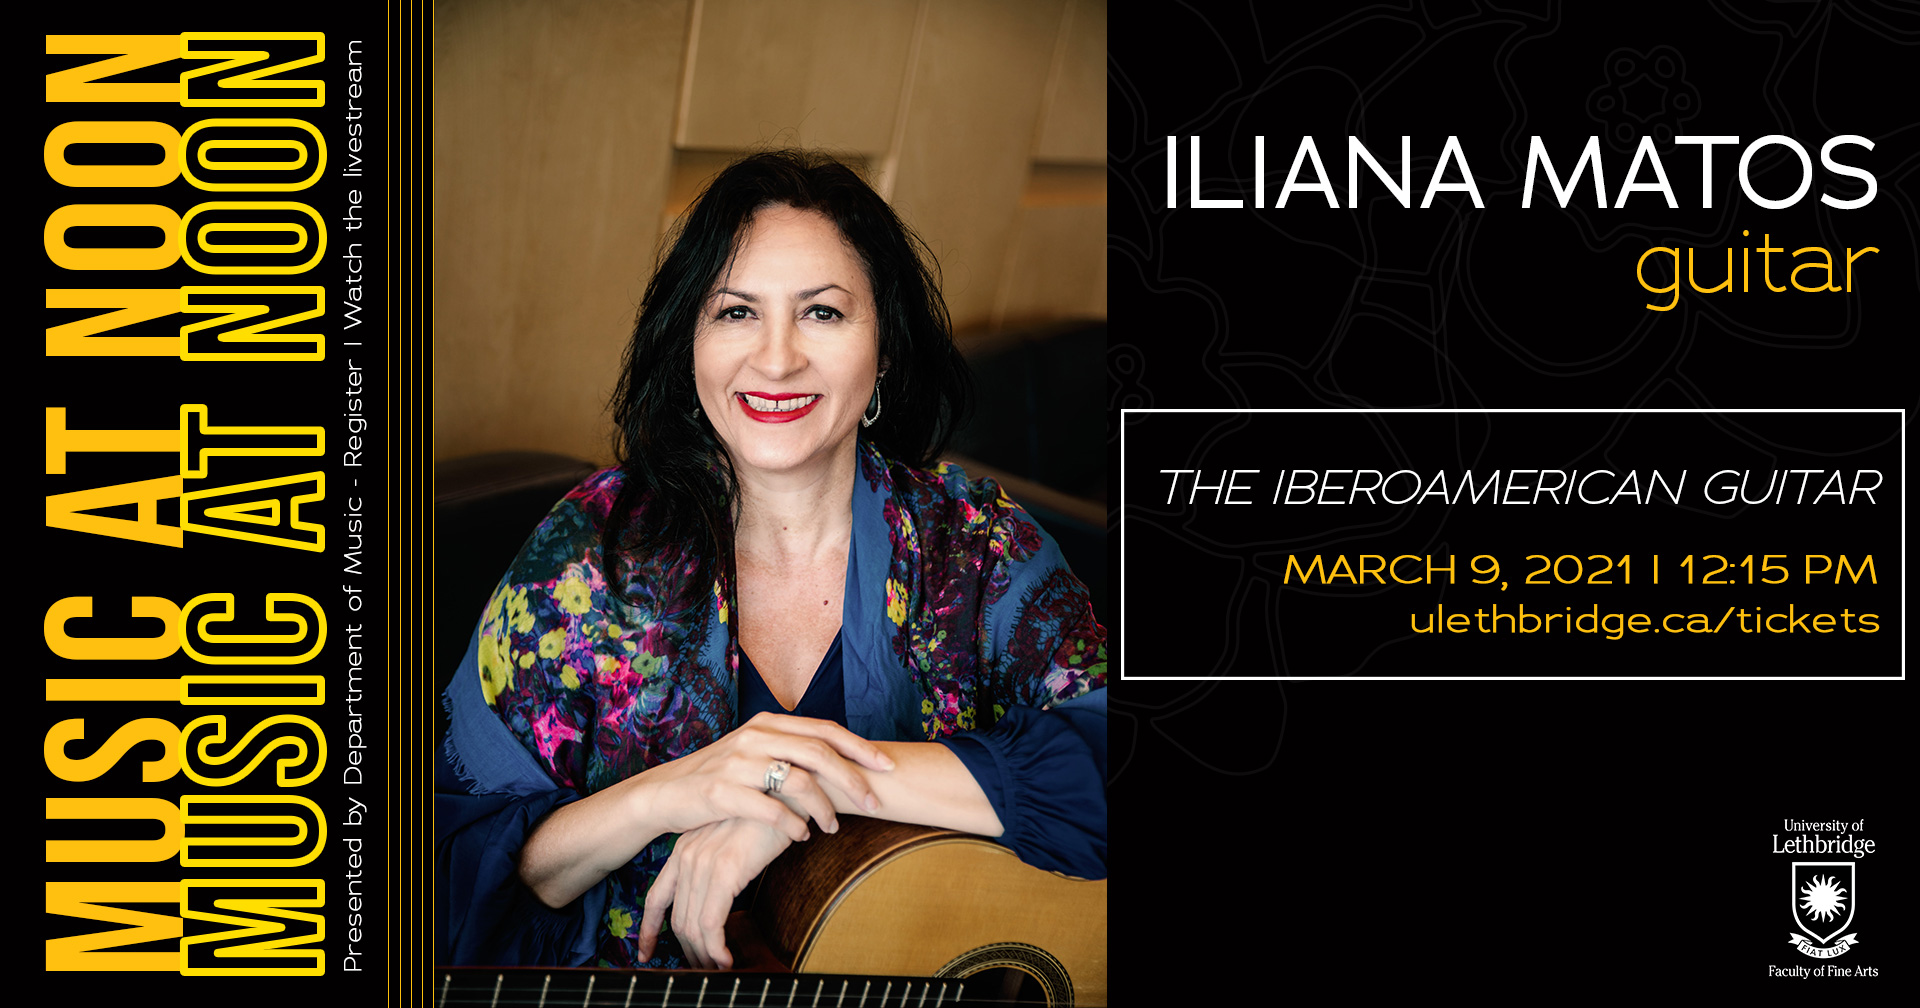 Music at Noon concert series presents Iliana Matos online, March 9, 2021 at 12:15 pm.